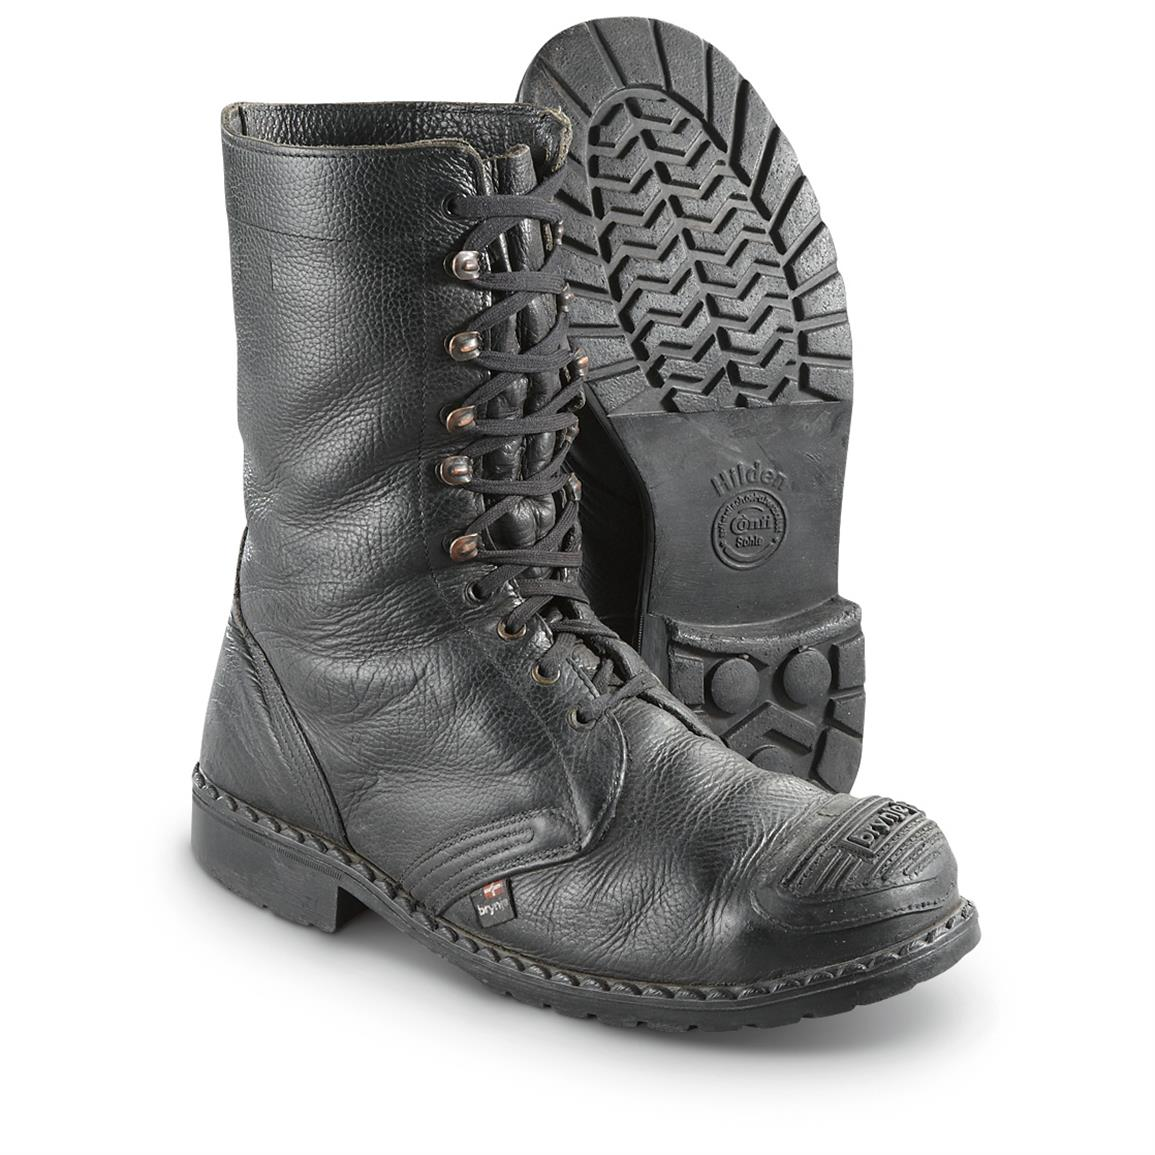 Steel Toe Combat Boots fEe5zK4z